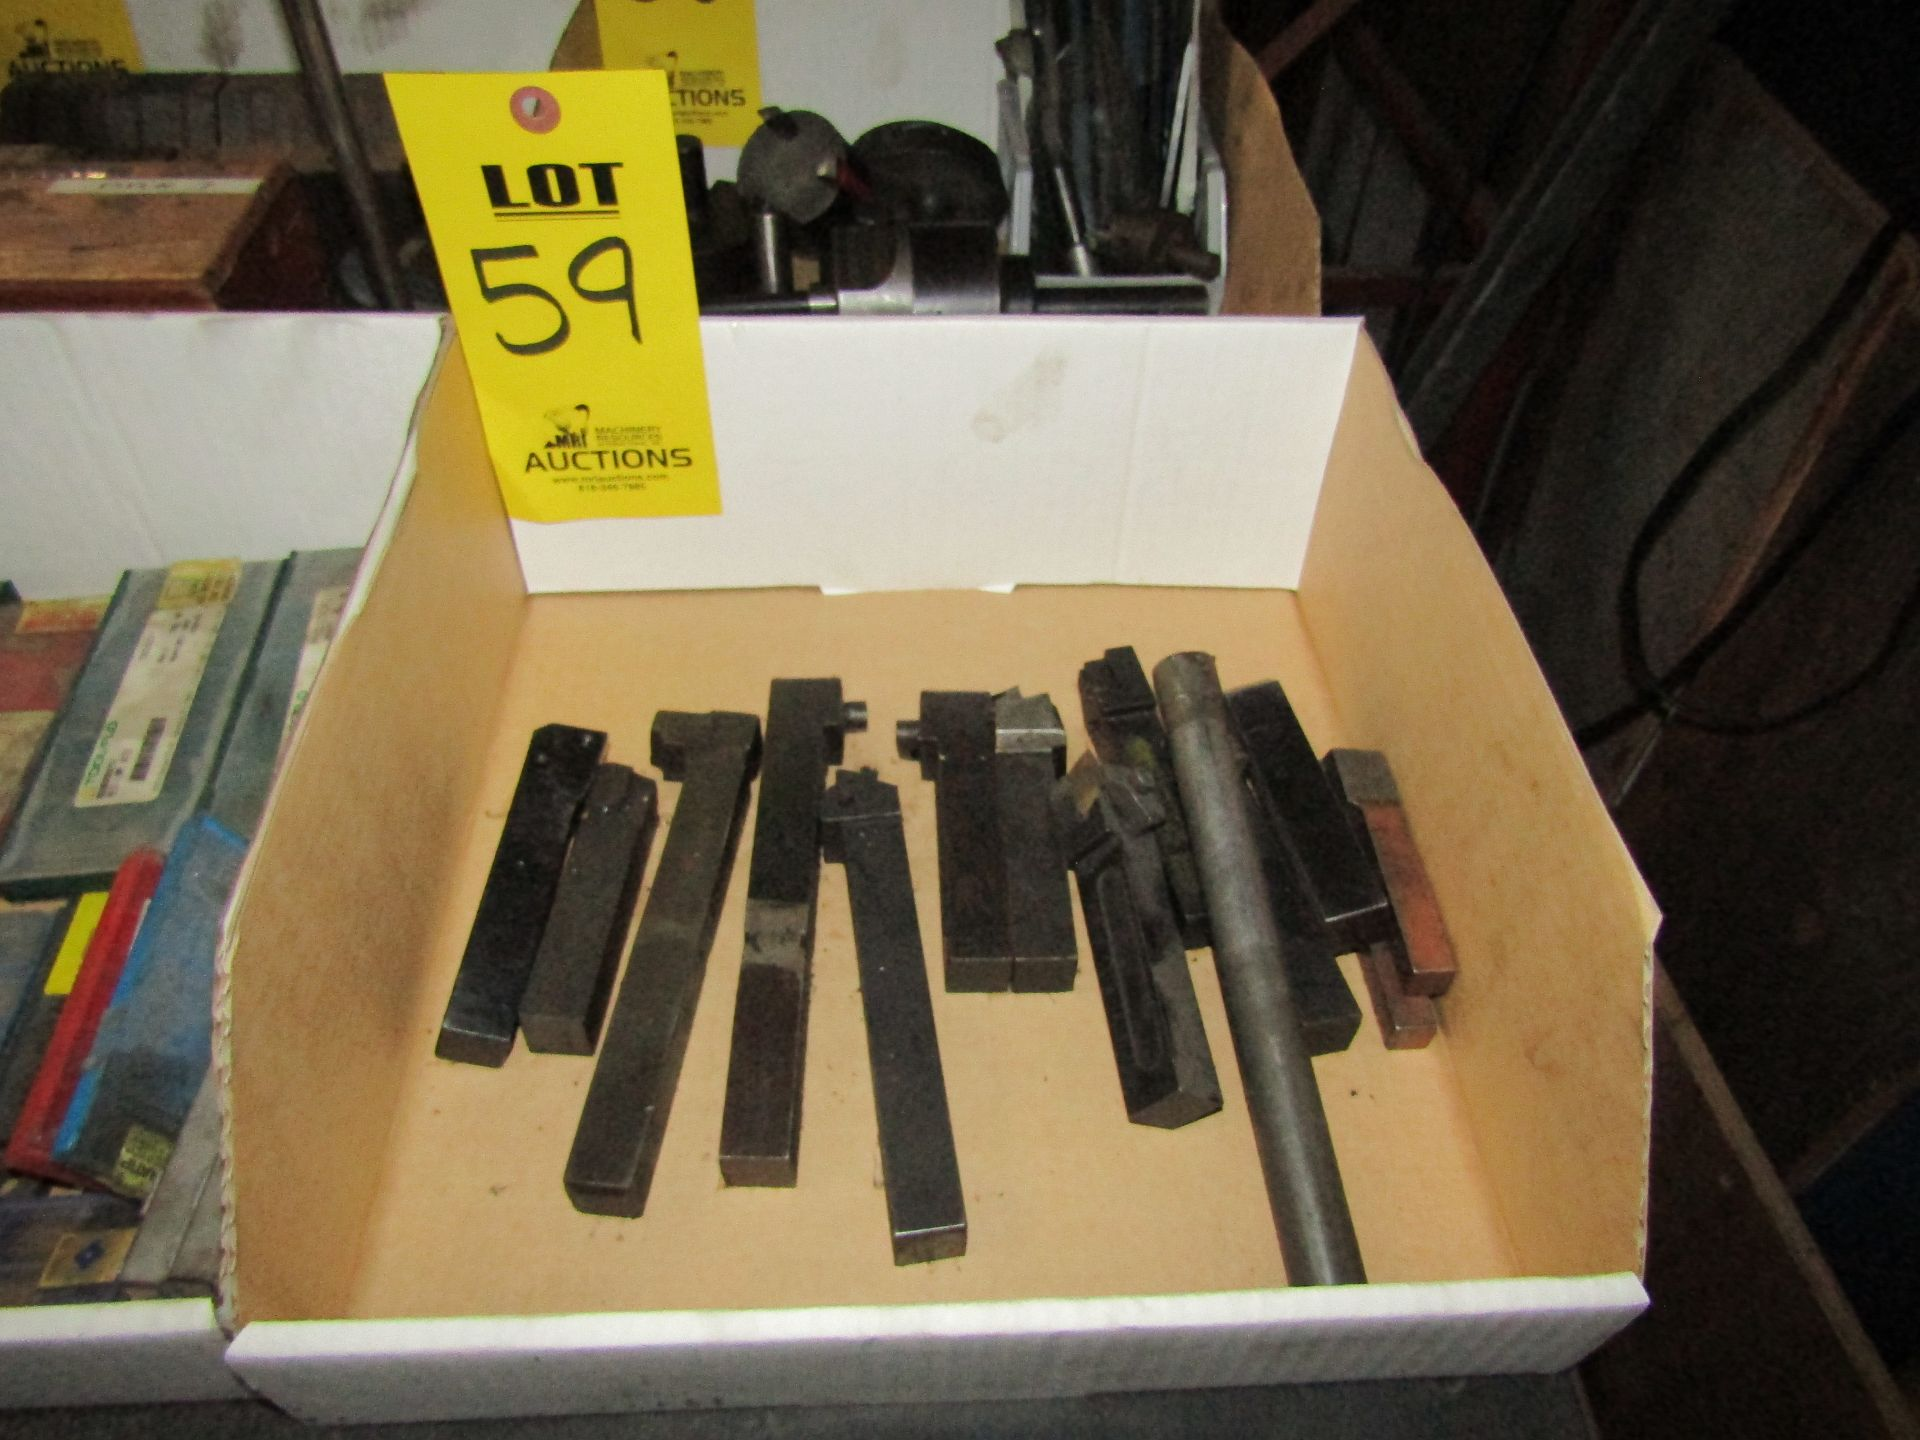 Lot 59 - Misc. Turning Tool Holders, Cutting Tools